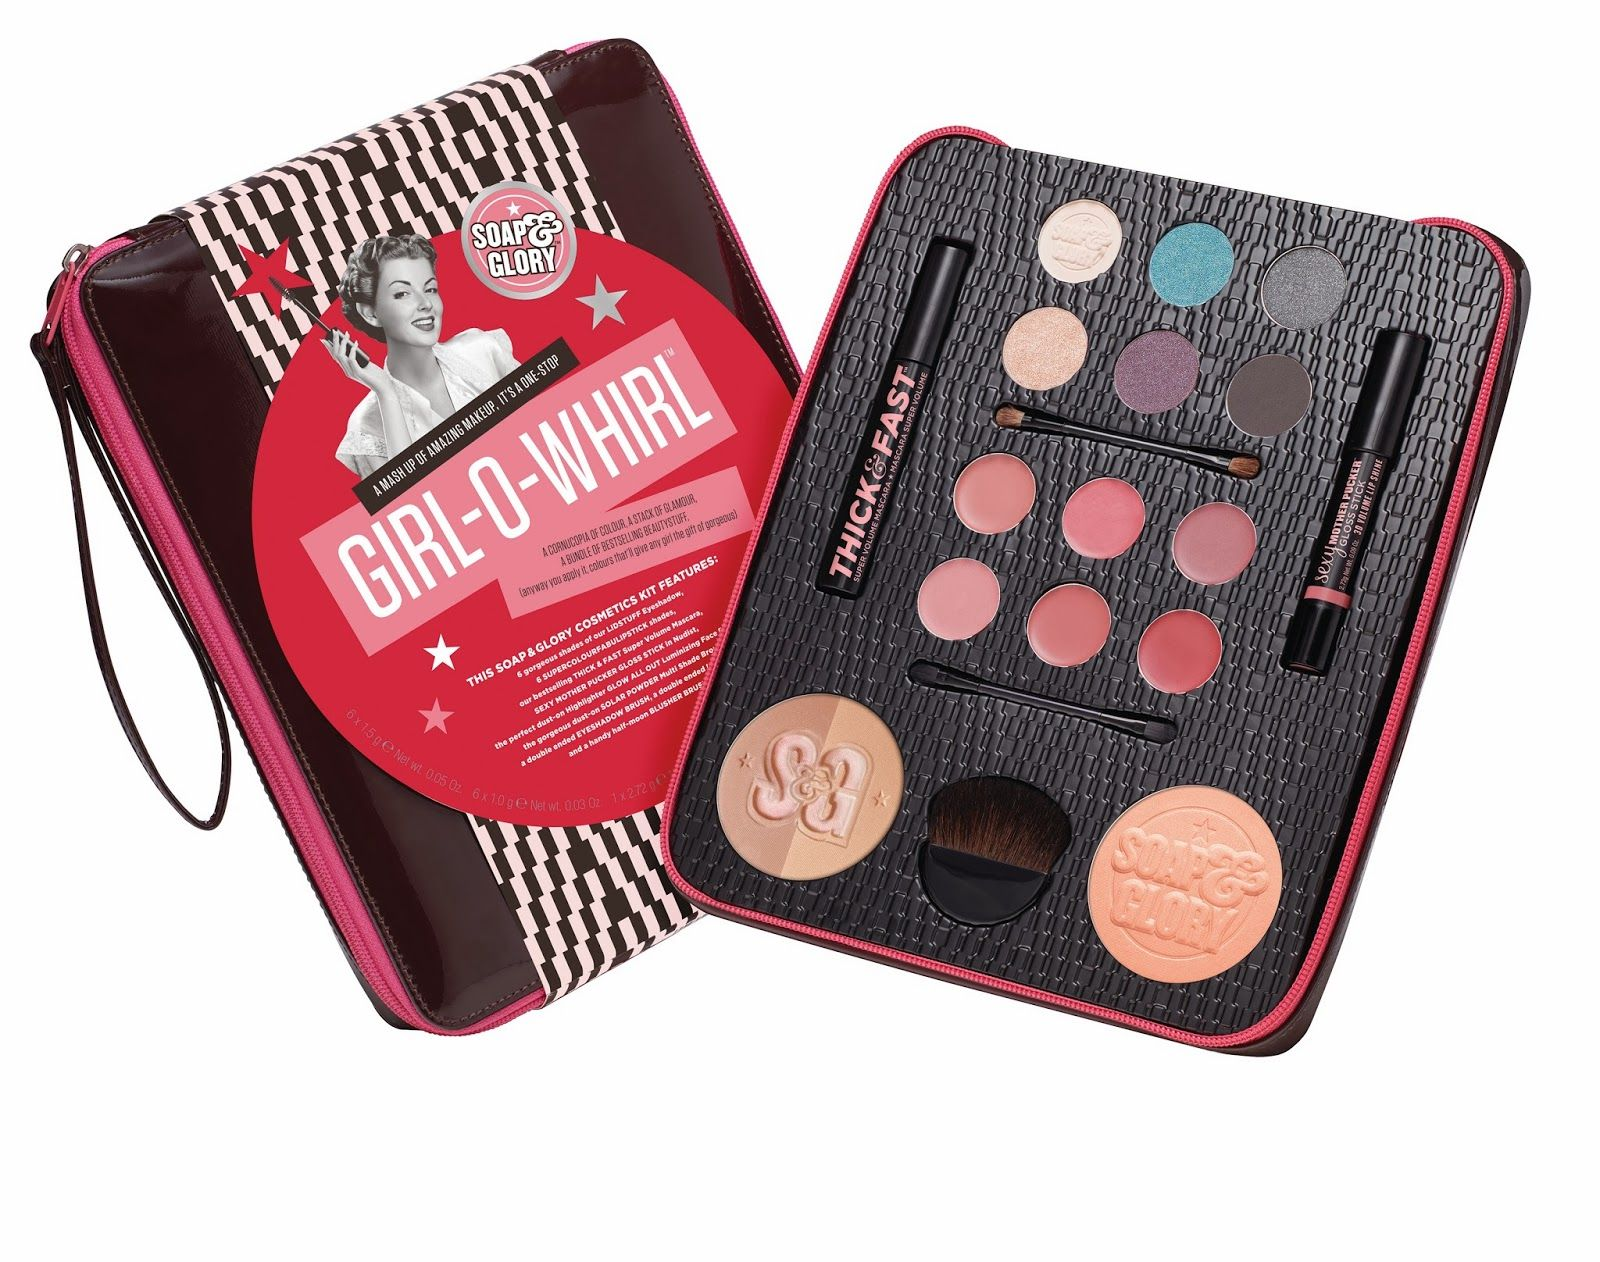 Boots Star Gift of the Week Soap and Glory's GirlOWhirl